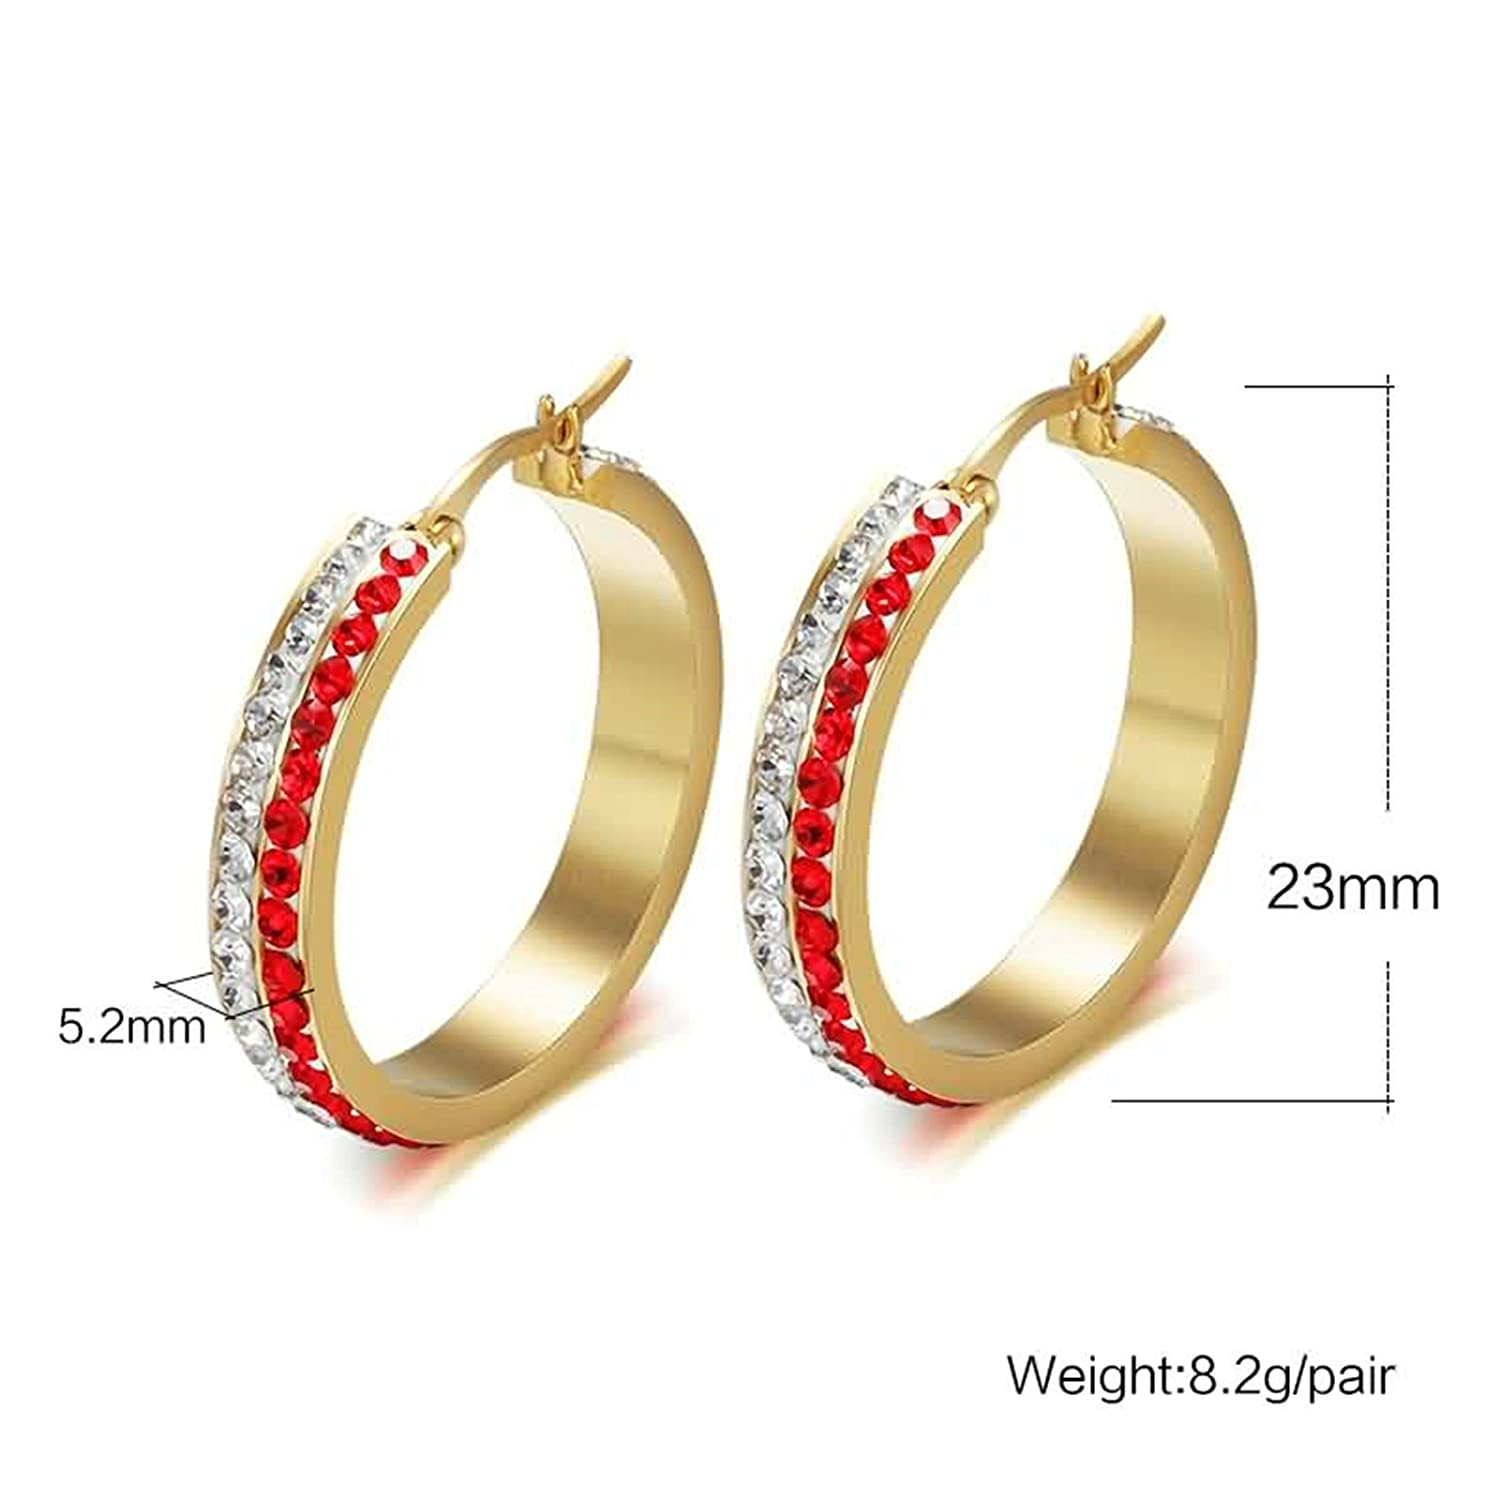 Epinki Women Stainless Steel Earrings Red White 2 Row Cubic Zirconia Round Circle 23x5.2MM Earrings